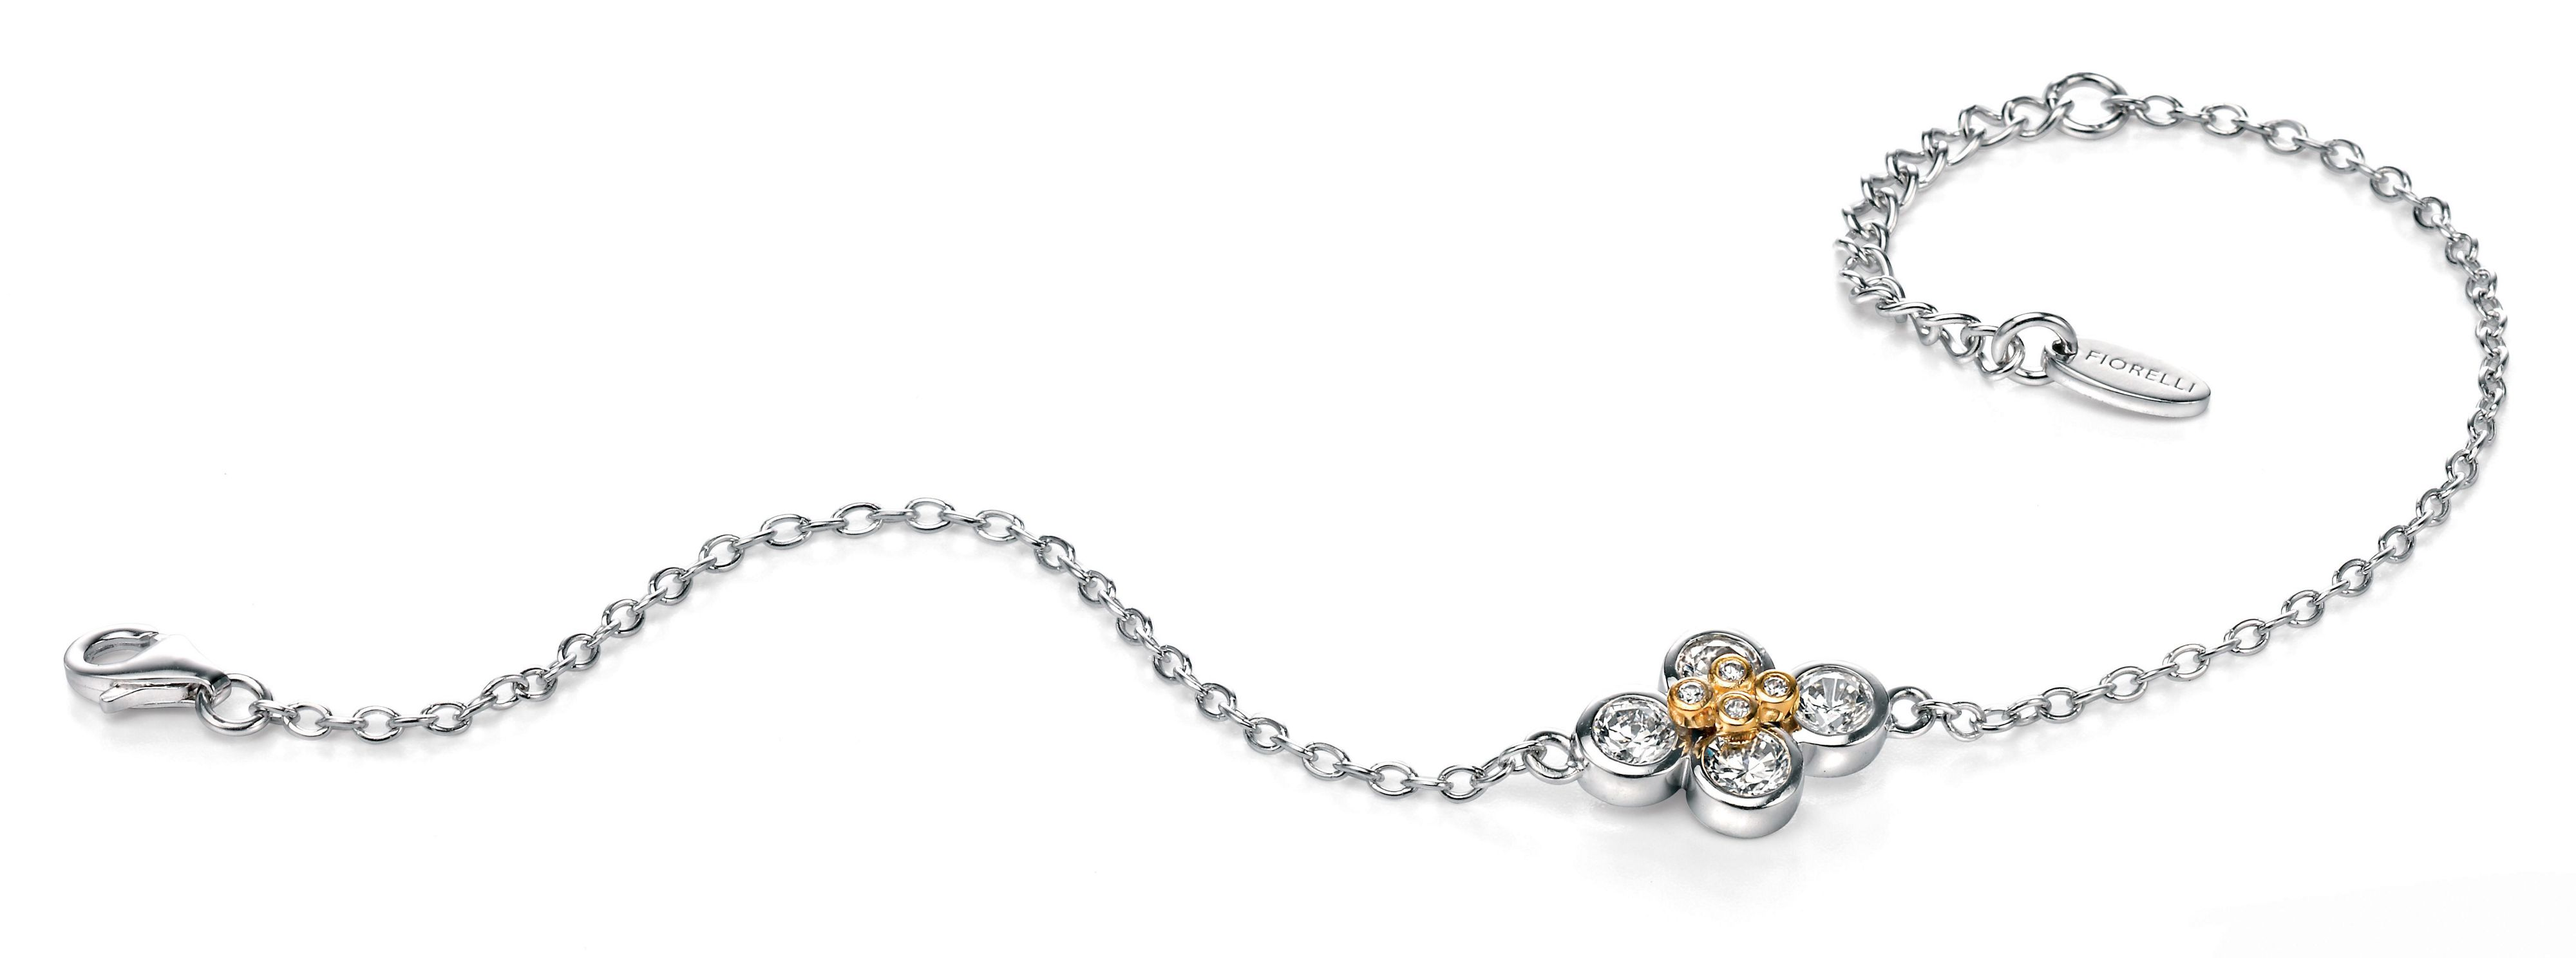 Small cz bracelet with gold plated detail